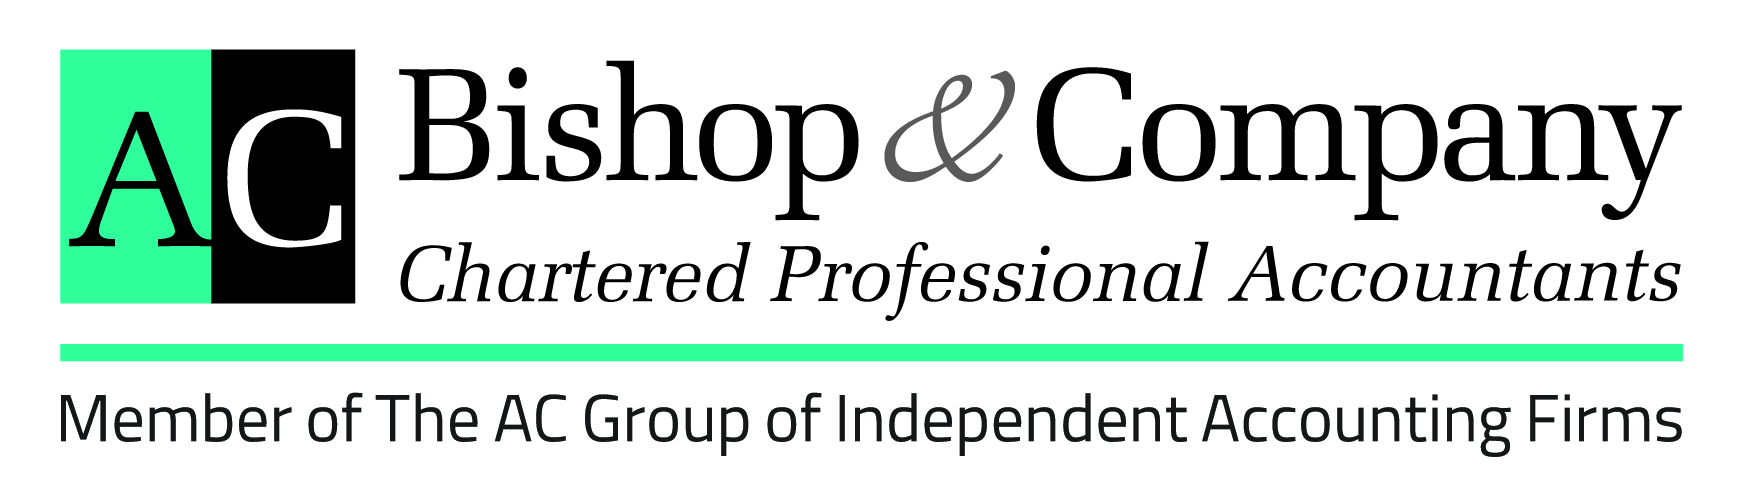 Bishop & Company Chartered Professional Accountants Inc logo